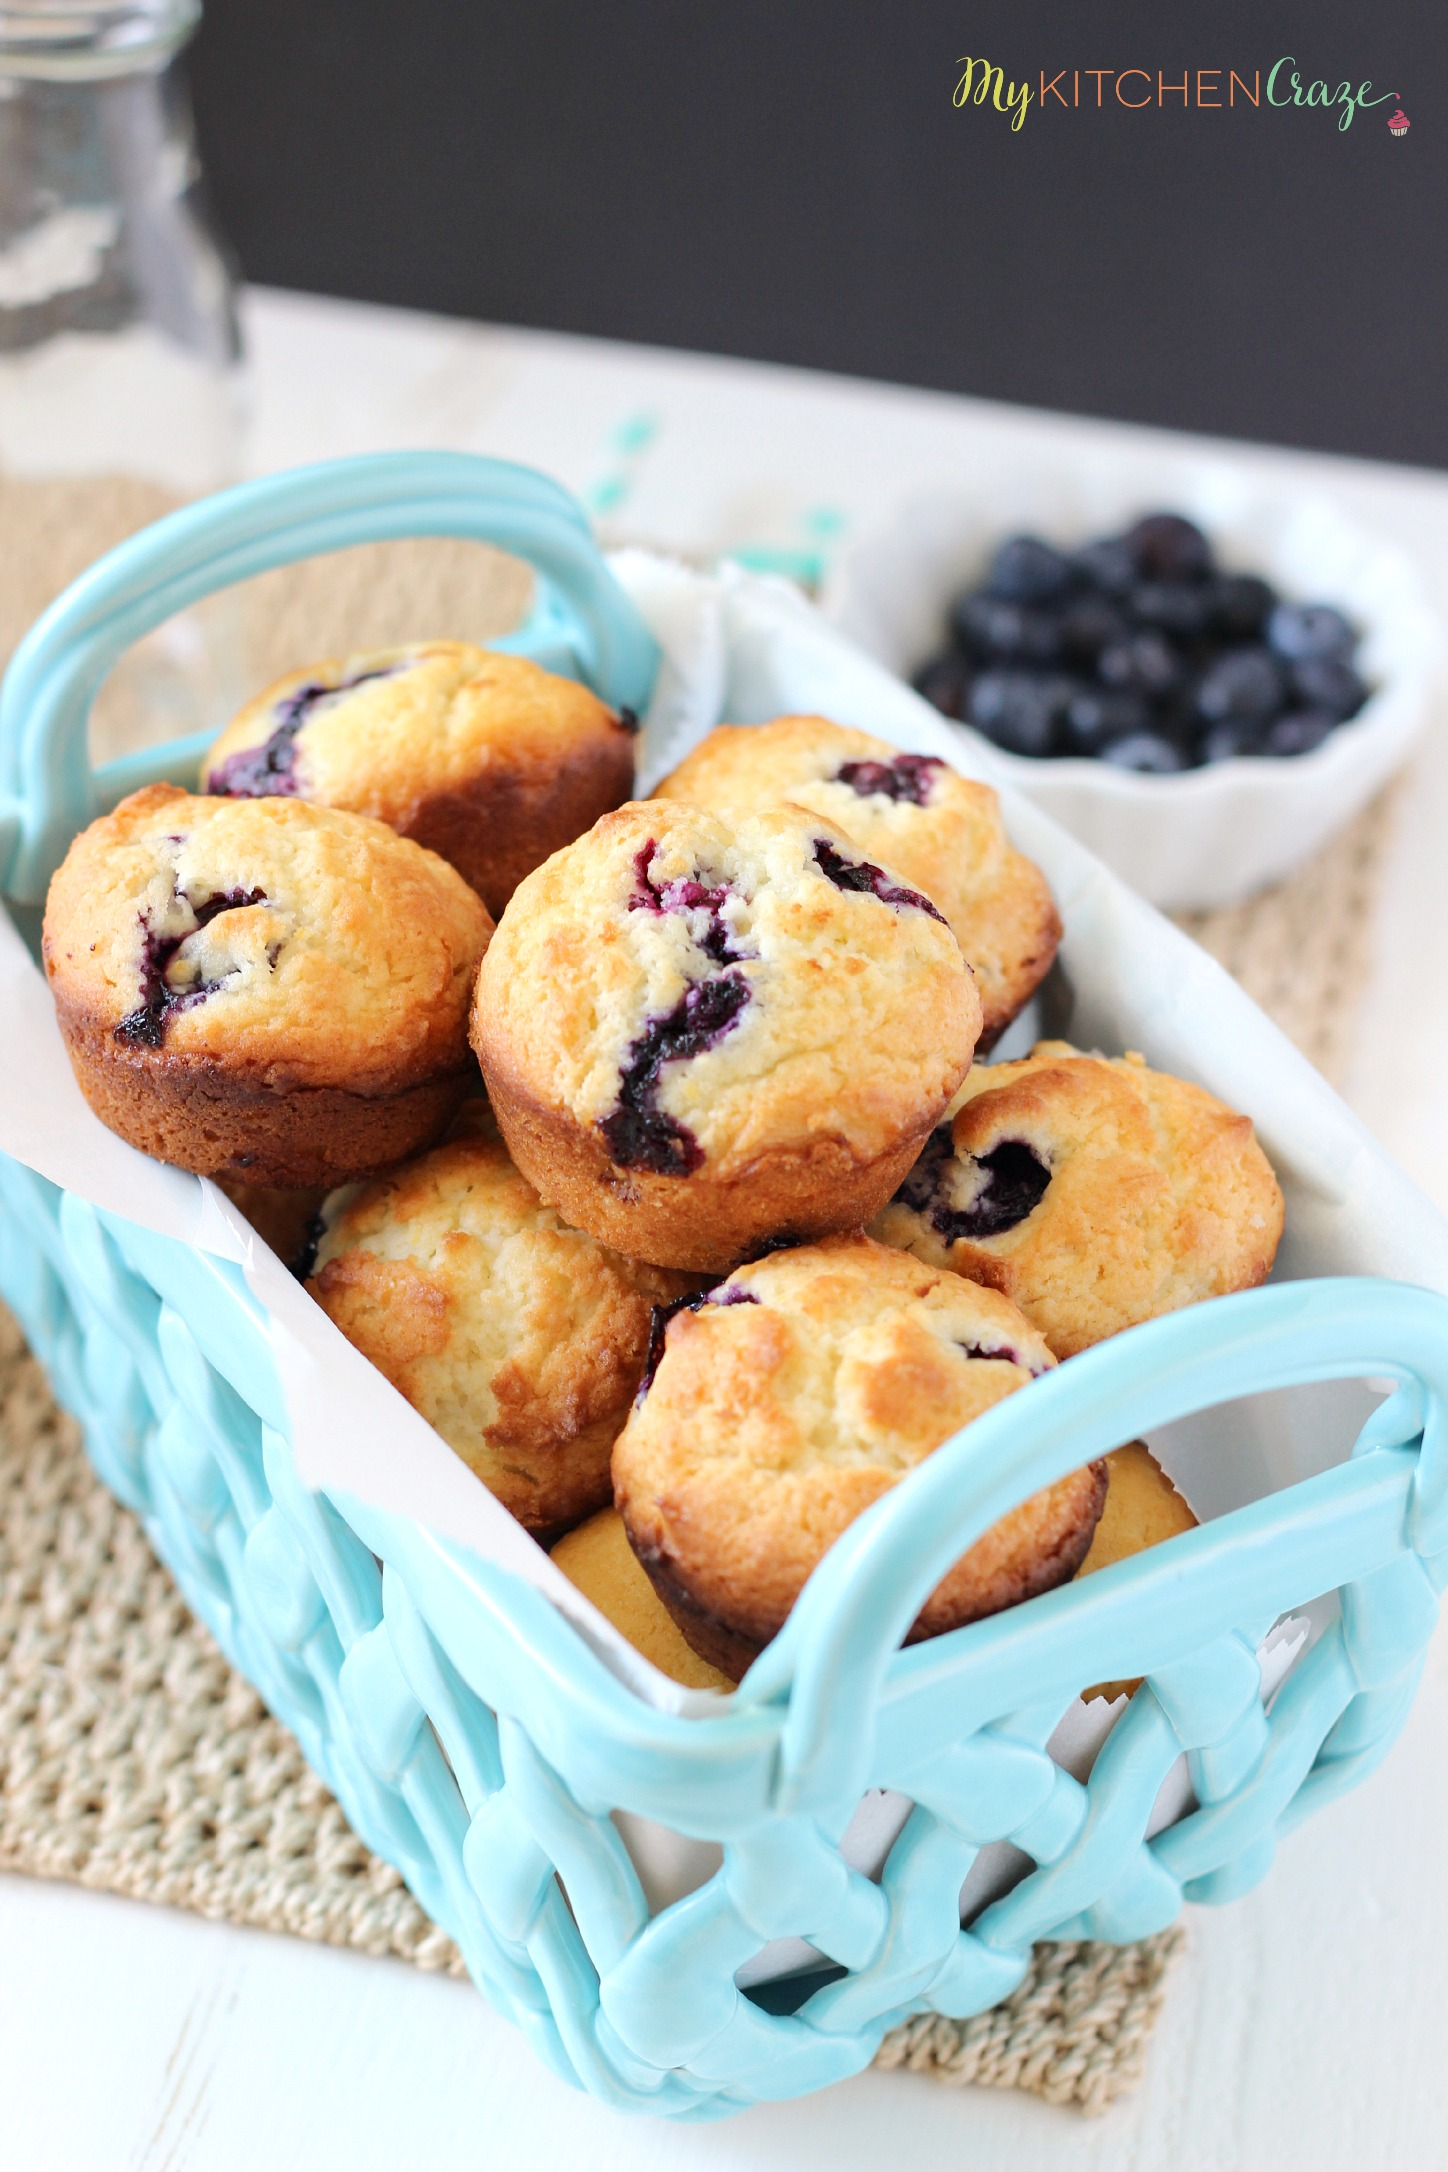 Blueberry Muffins ~ mykitchencraze.com ~ Moist and delicious muffins are filled with juicy blueberries. These Blueberry Muffins are perfect for breakfast.